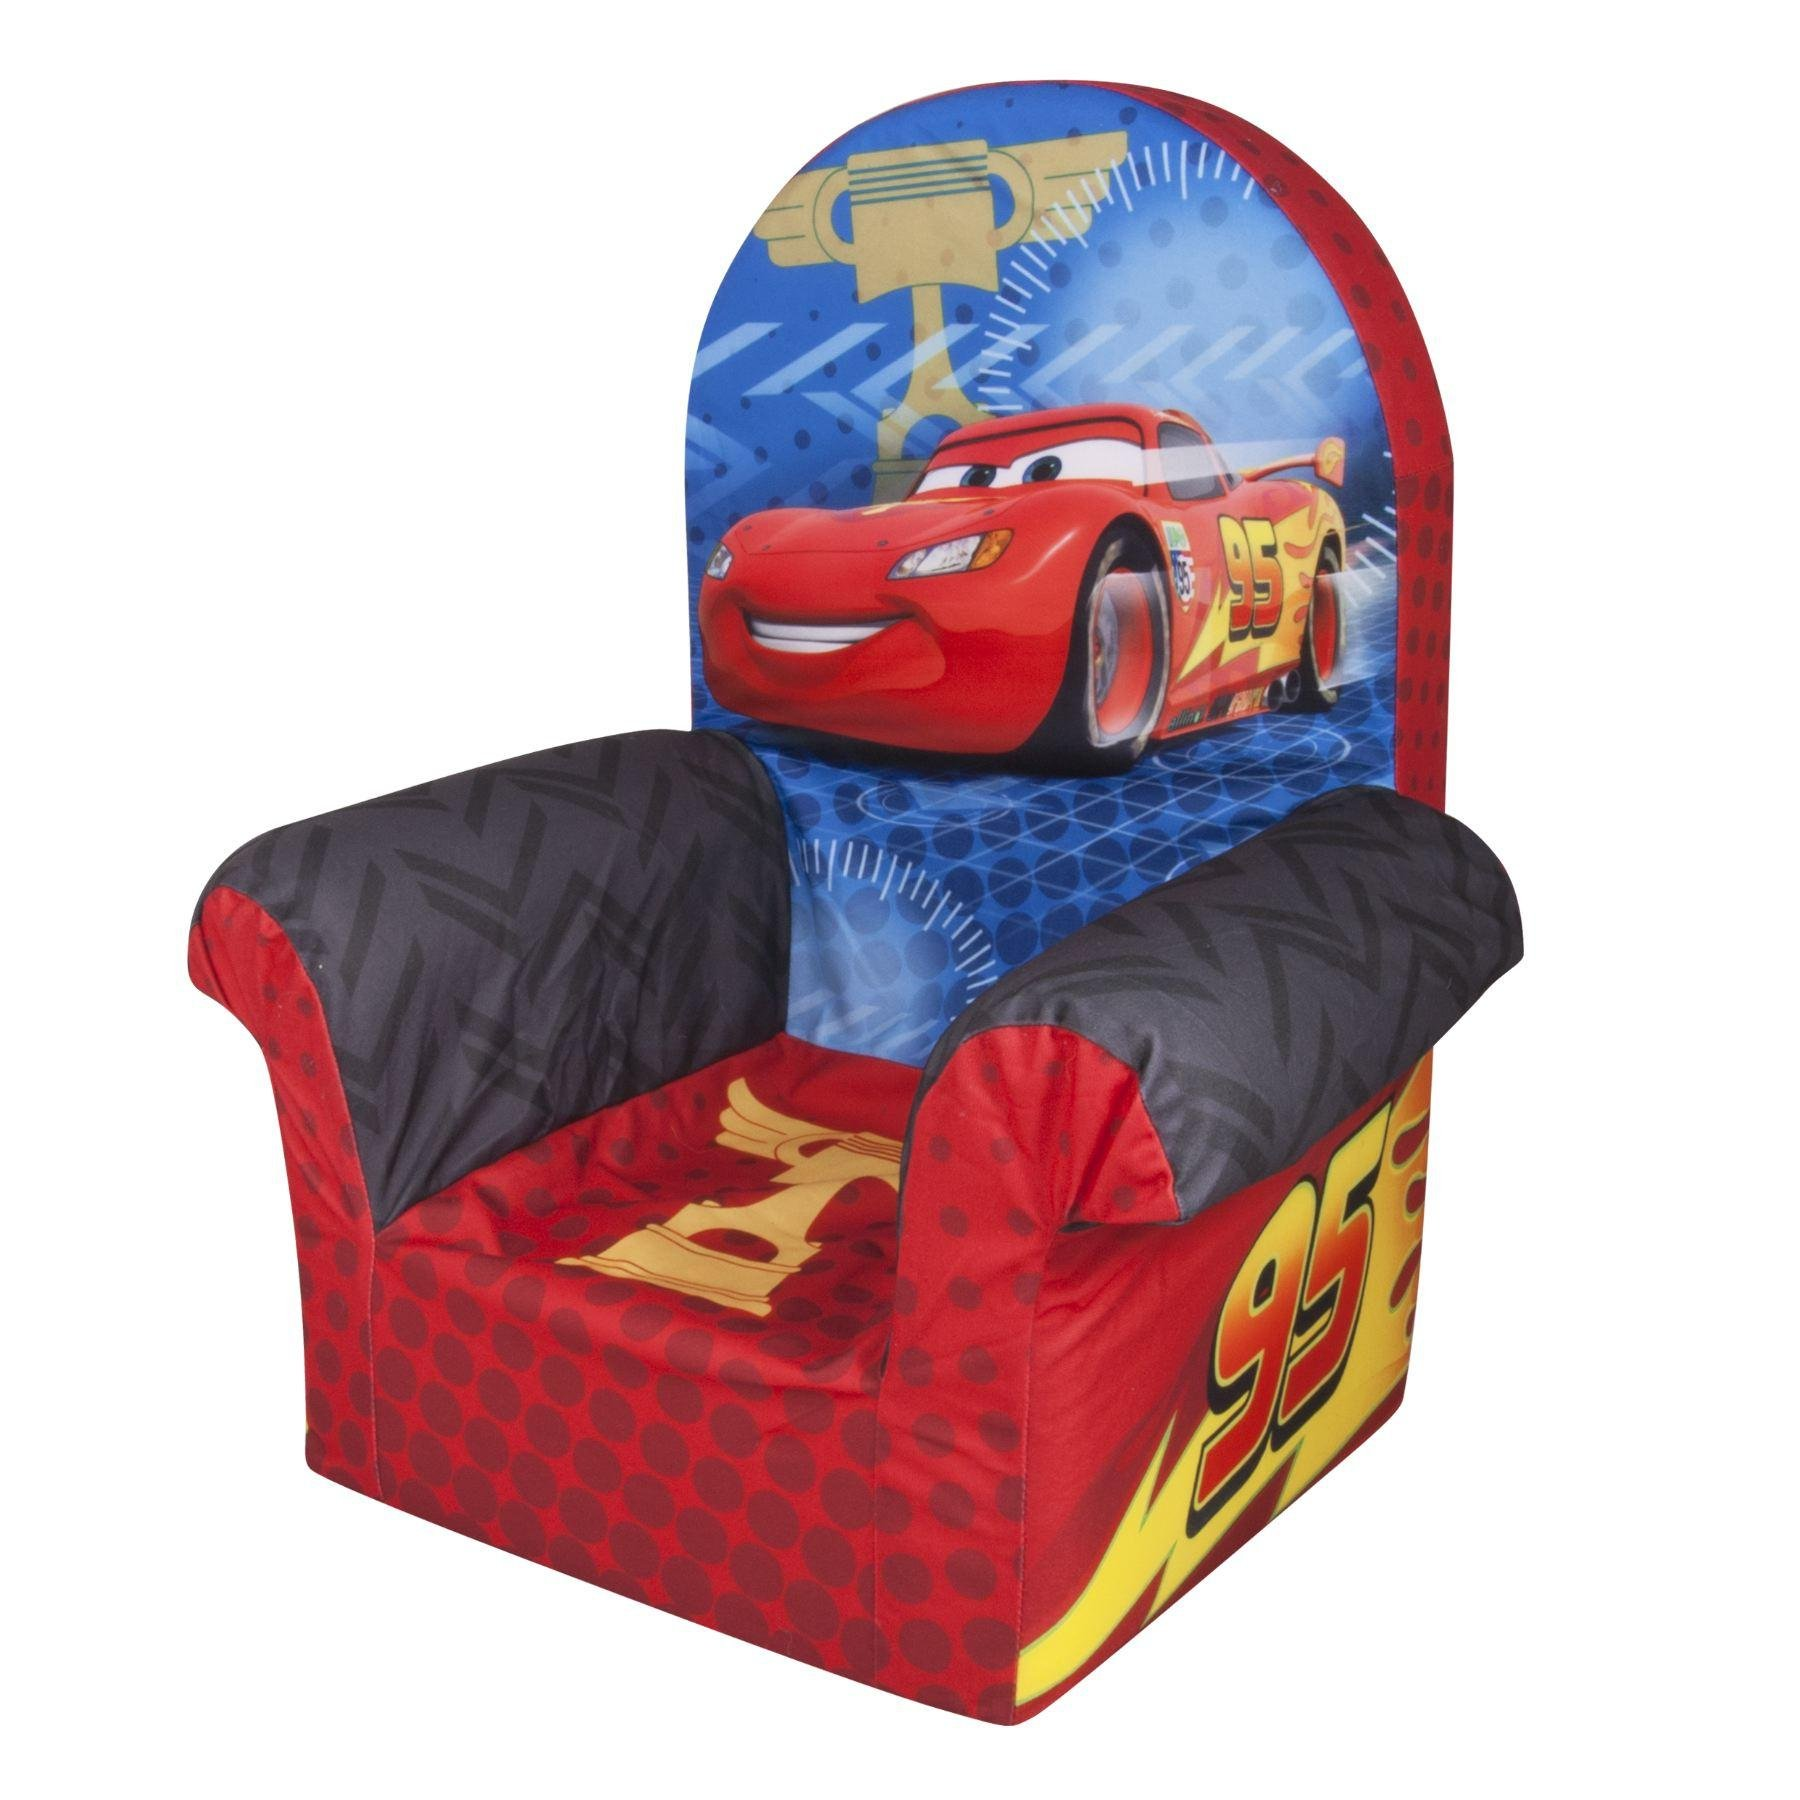 Marshmallow Furniture Disney's Cars 2 High Back Chair